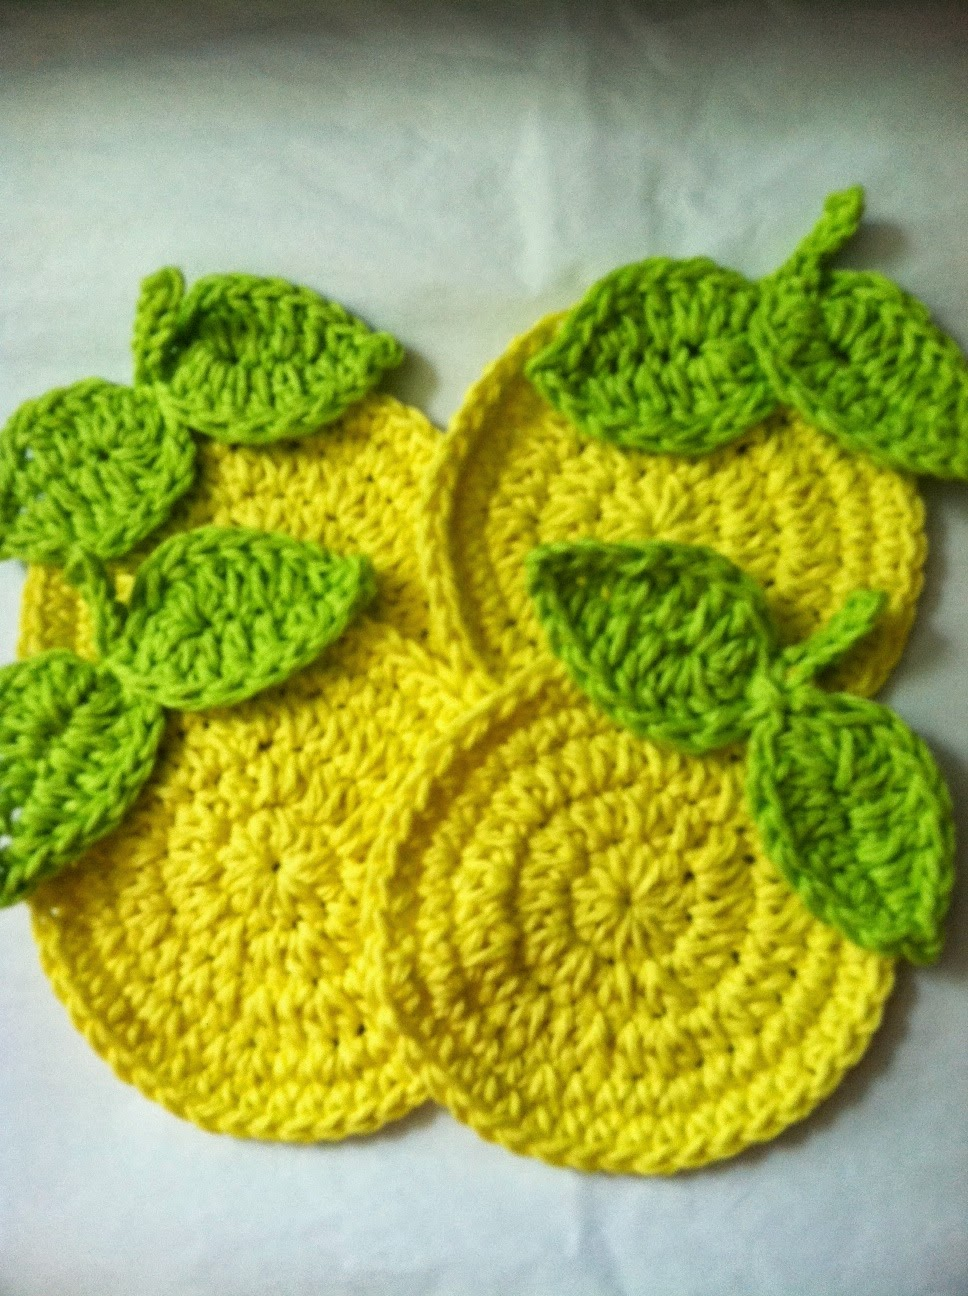 Free Crochet Pattern For Coaster : Lakeview Cottage Kids: Having So Much Fun Making Citrus ...